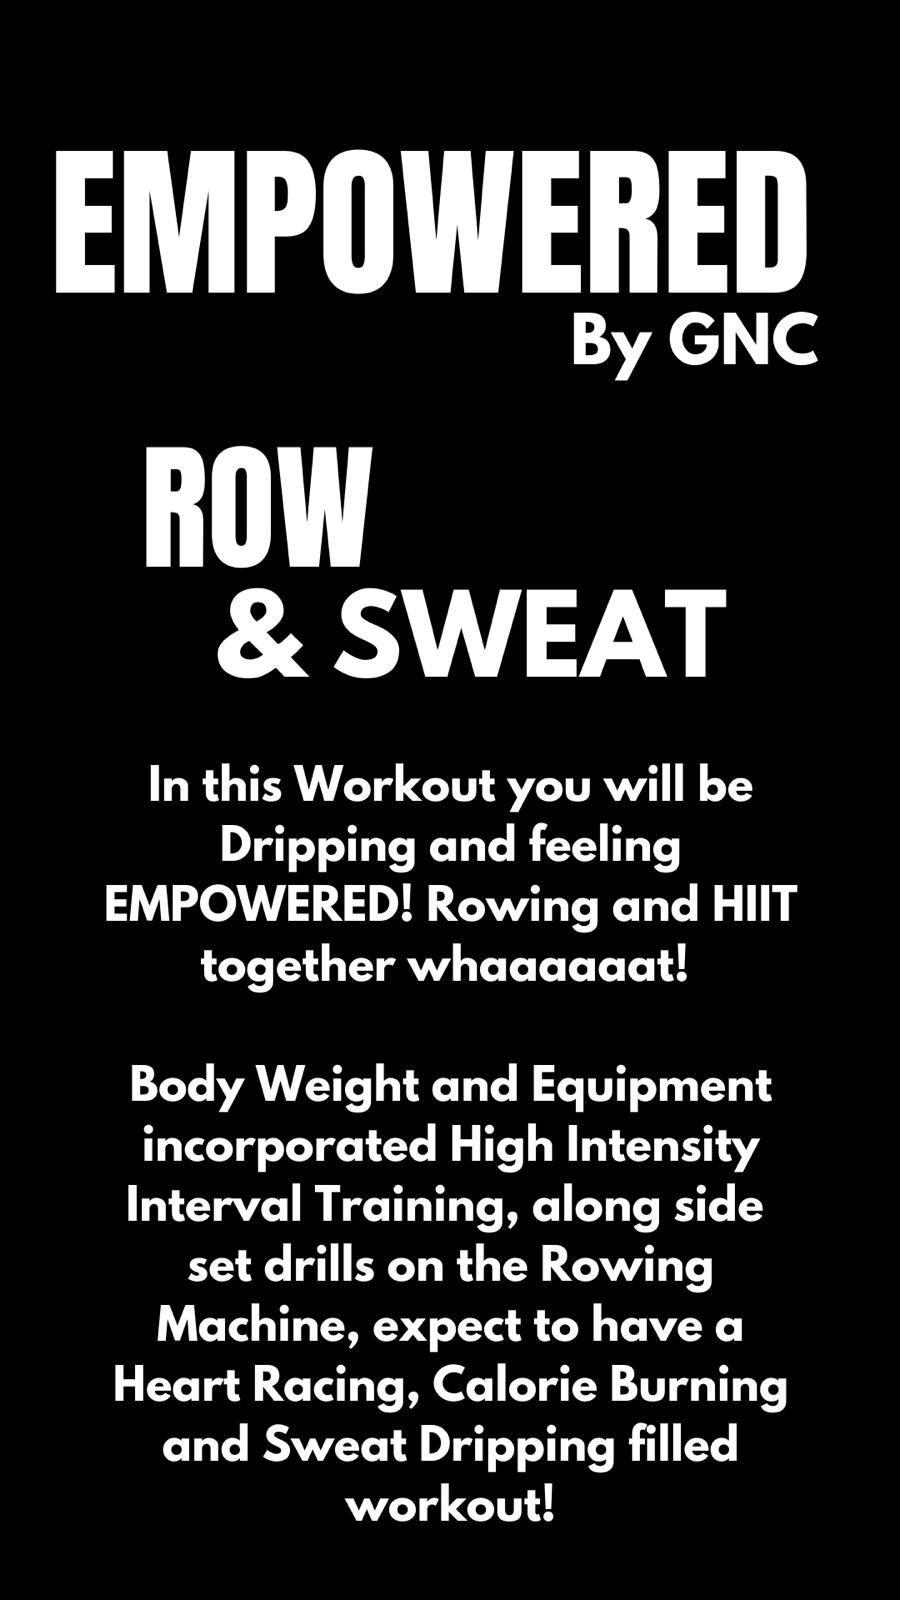 Empowered Row and Sweat by GNC